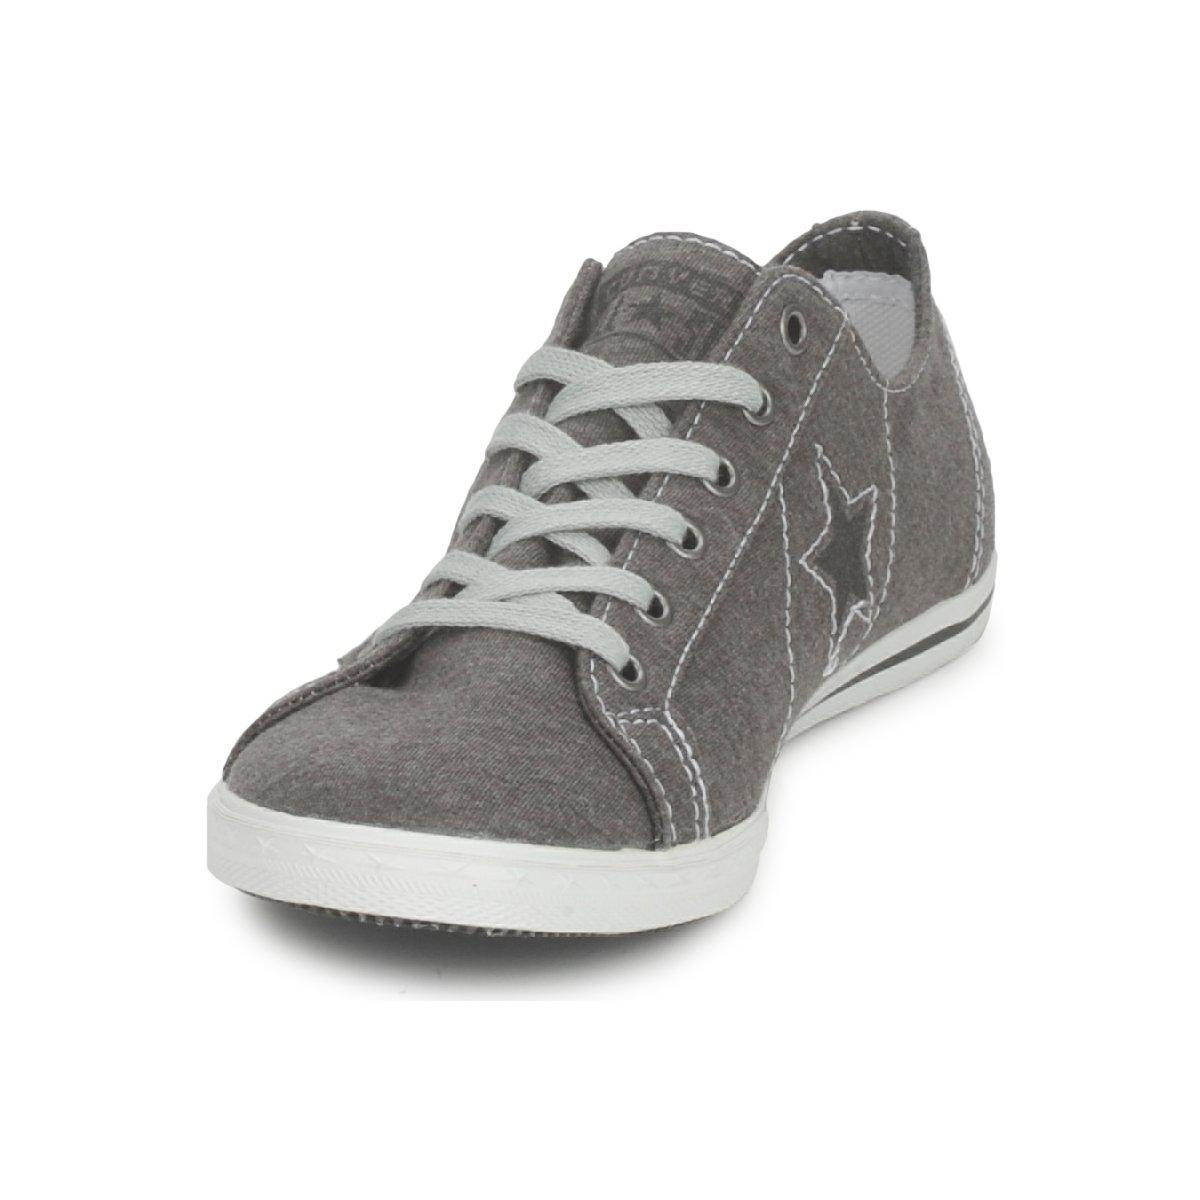 3f5a631bd806ec Converse One Star Low Profile Jersey Ox Shoes (trainers) in Gray - Lyst